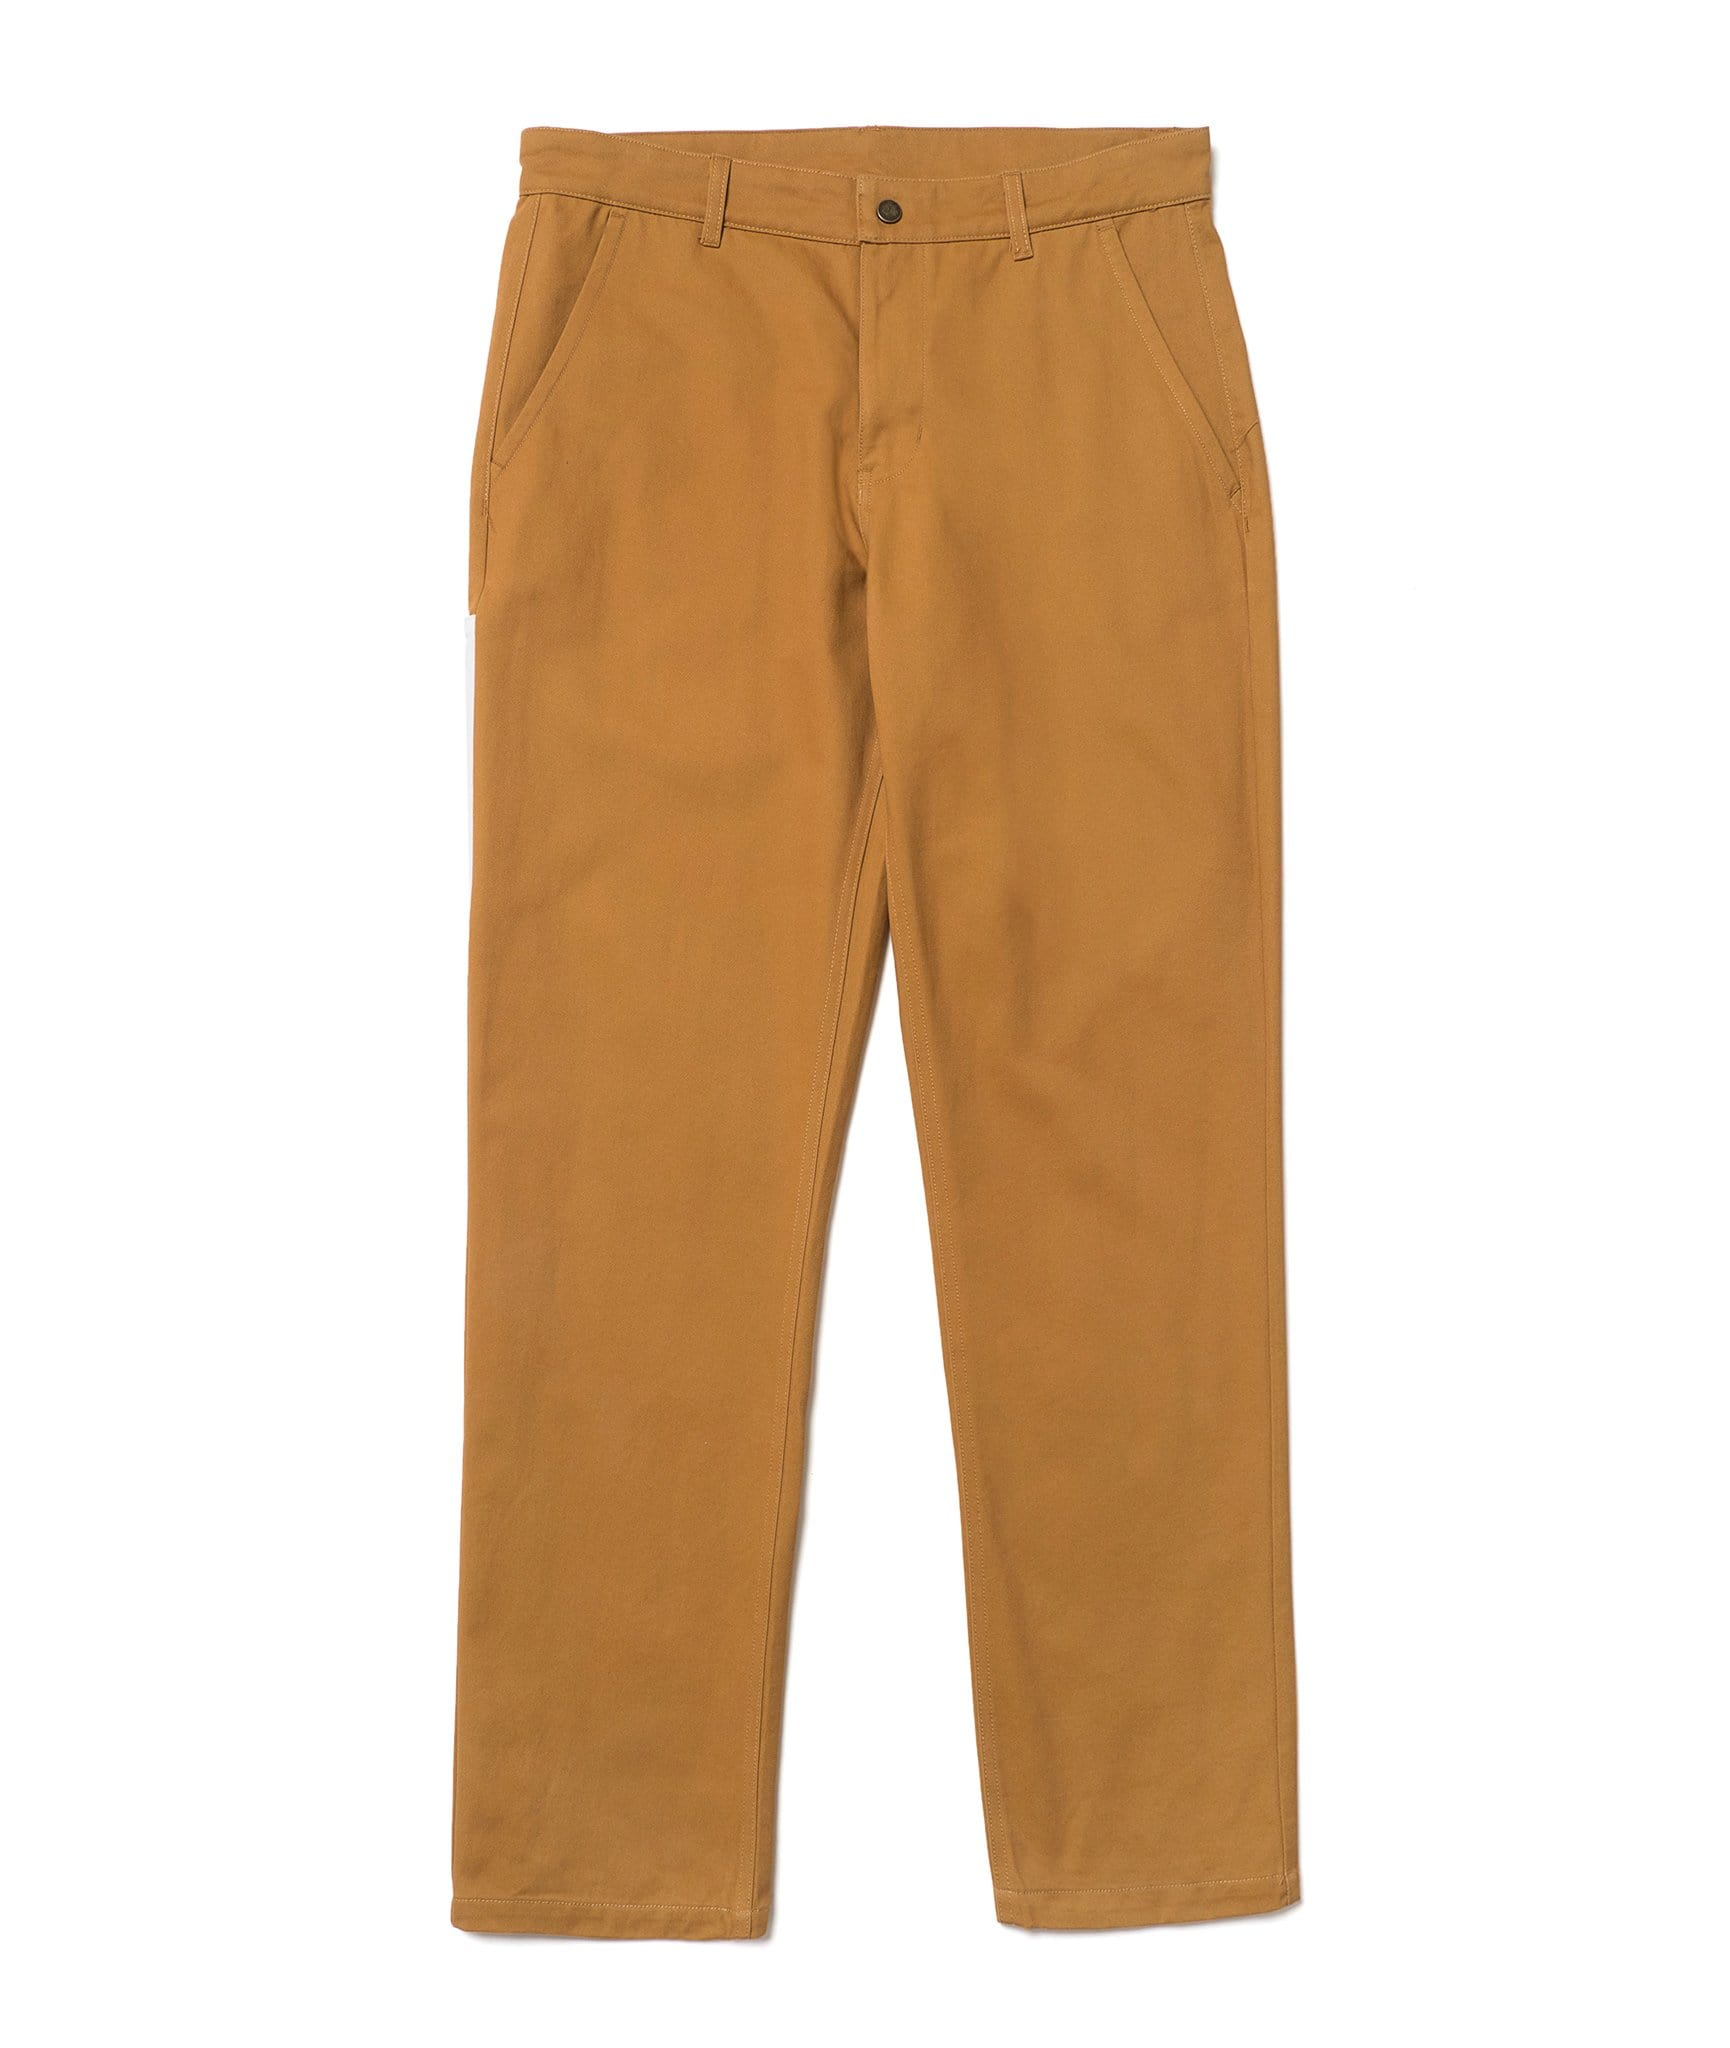 Alife Carpenter Pant